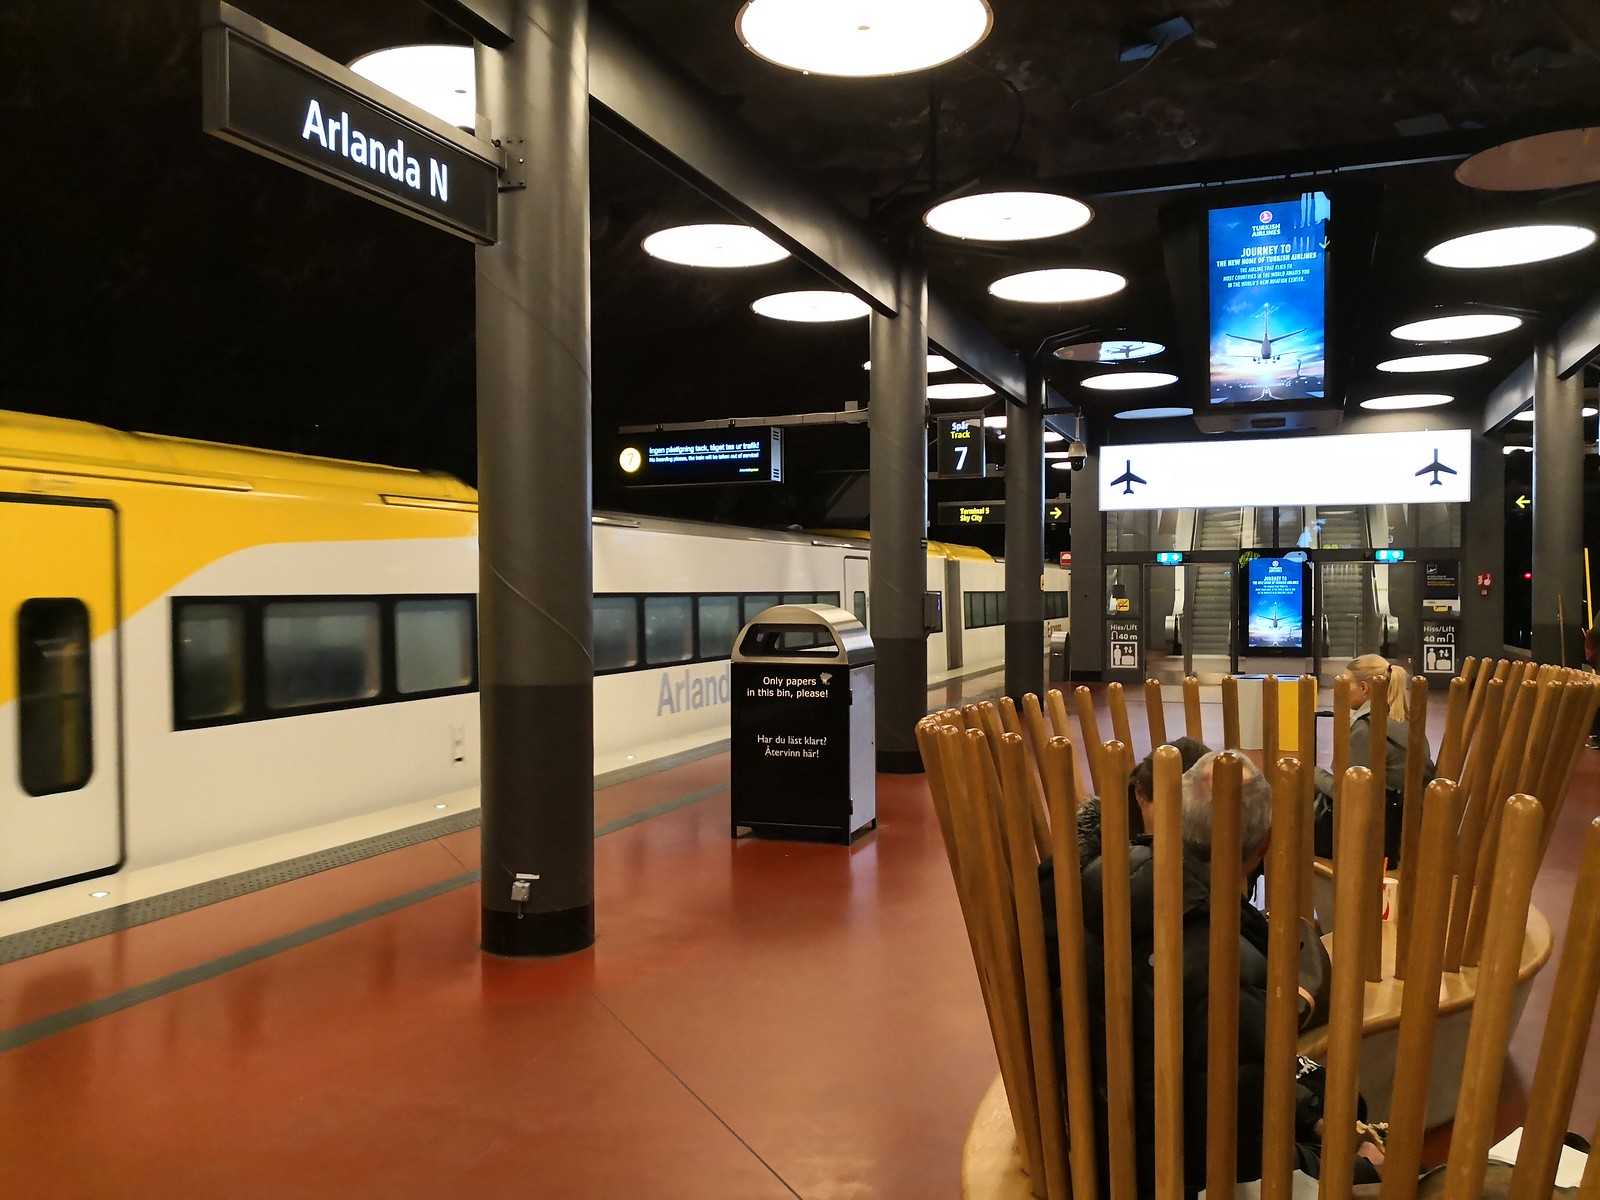 Station for the Arlanda Express